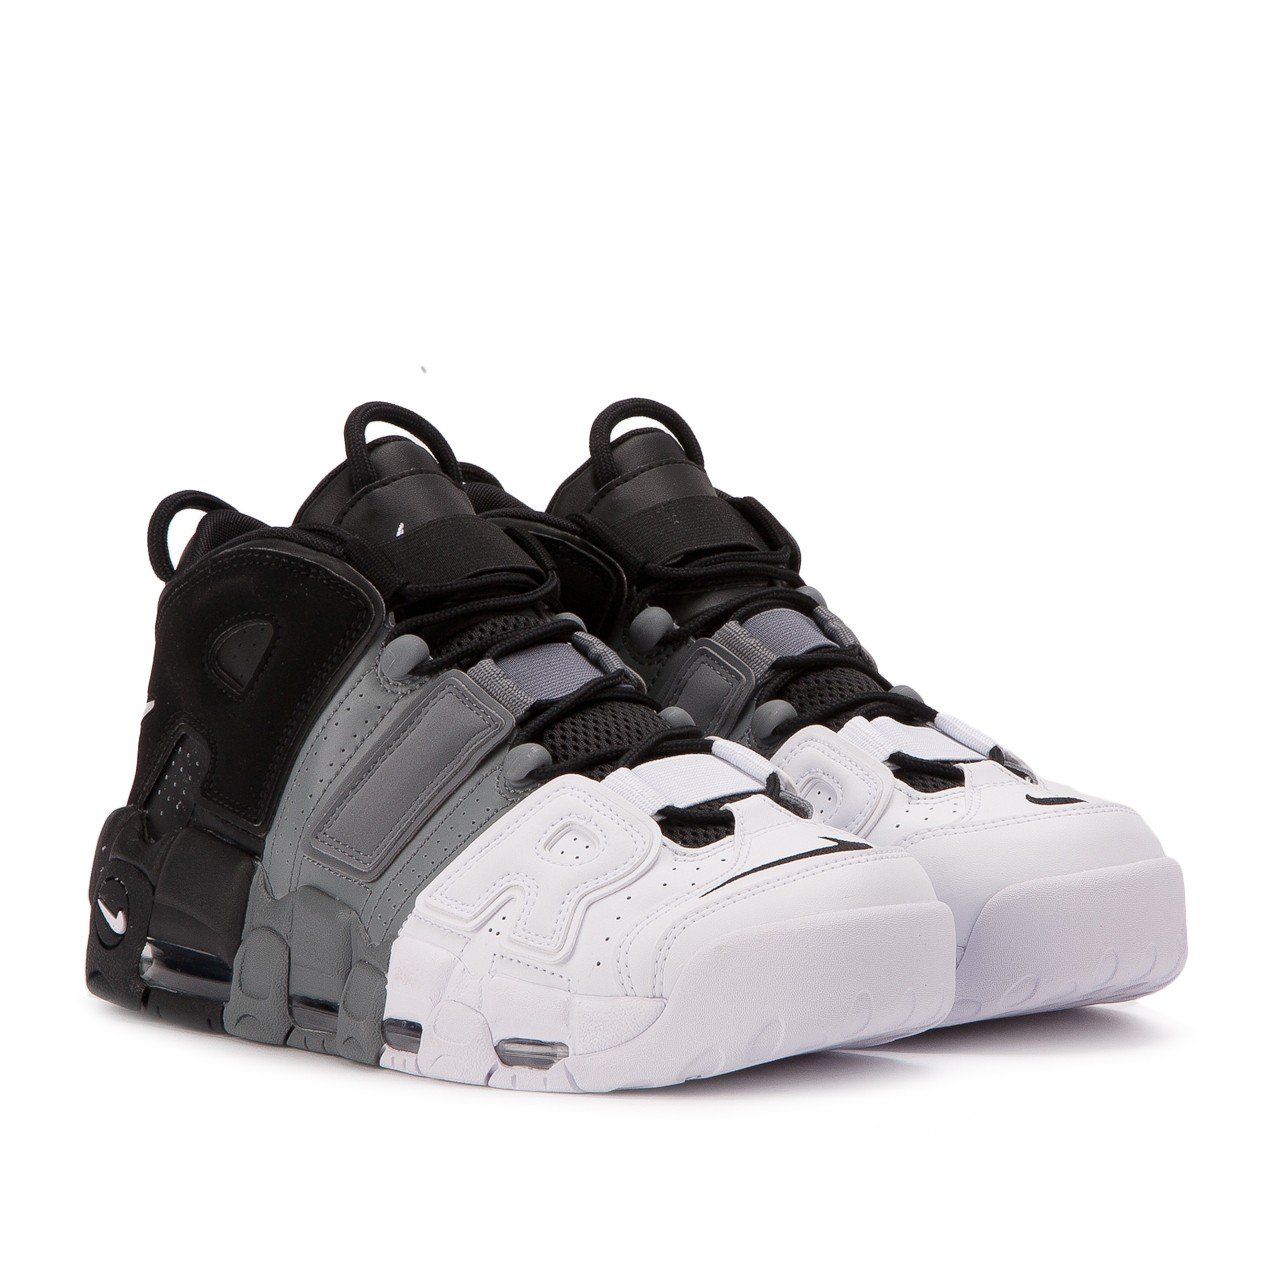 nike air more uptempo 96 nere